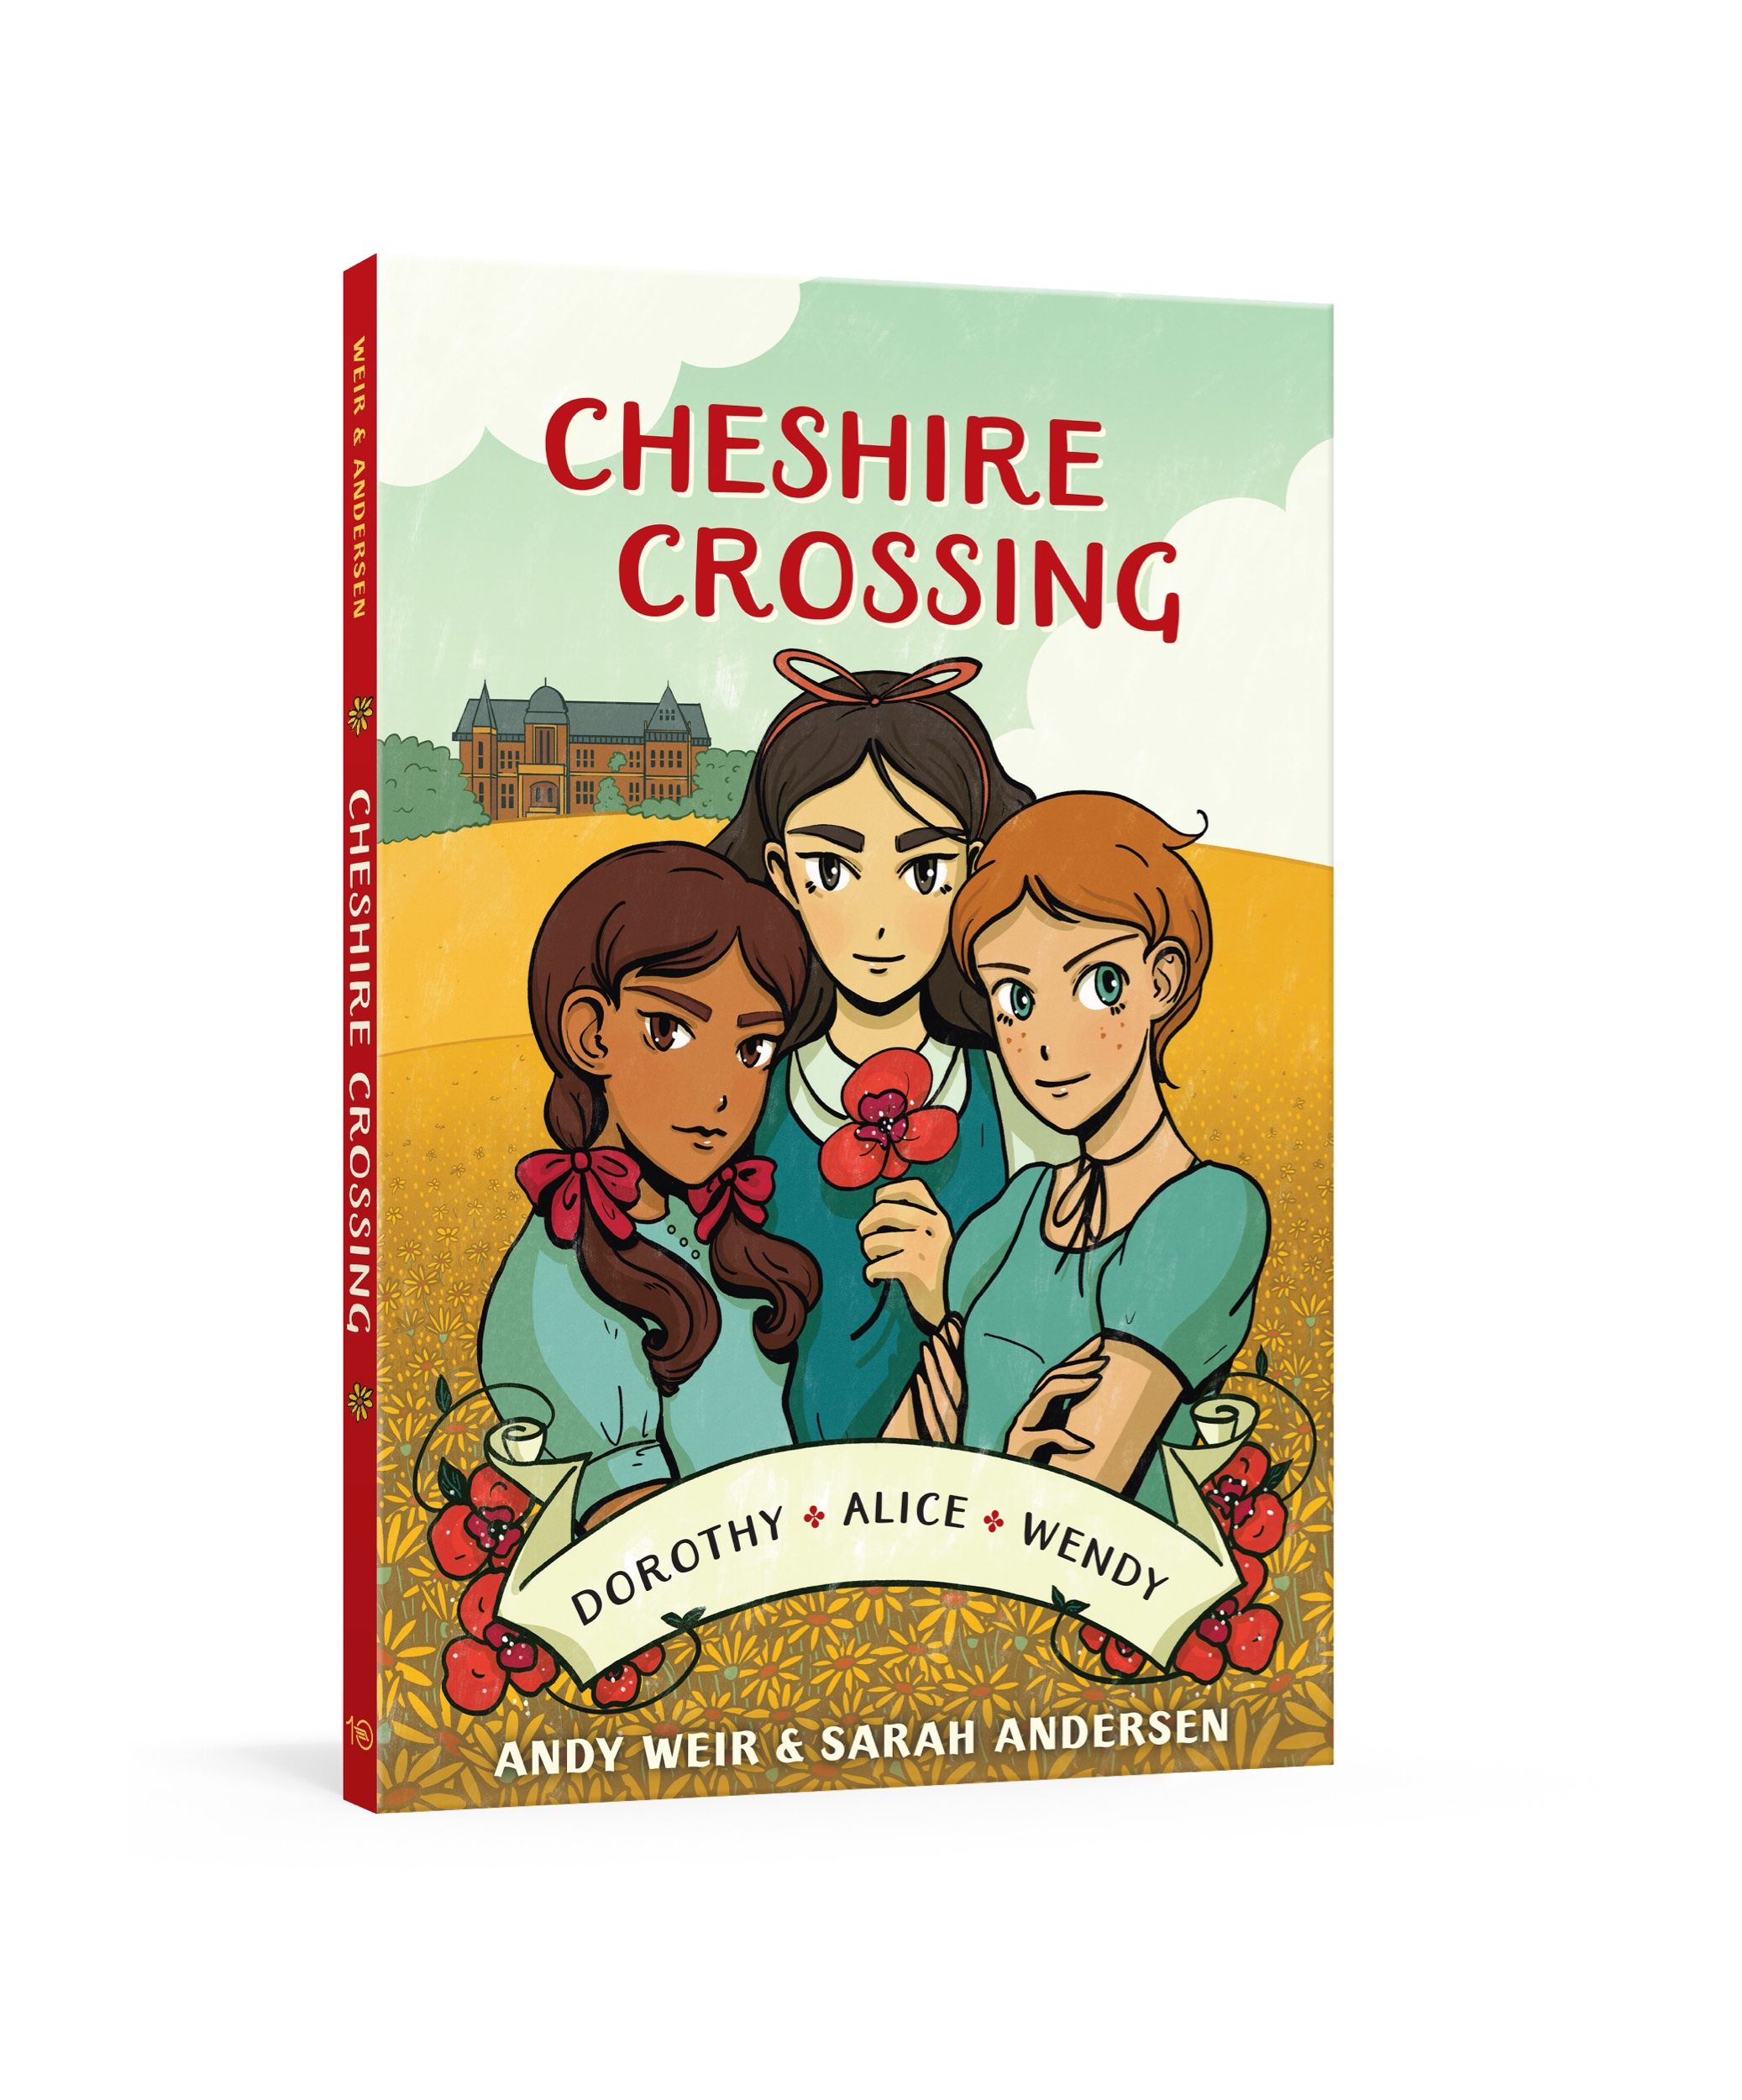 Cheshire Crossing 3D cover.jpeg